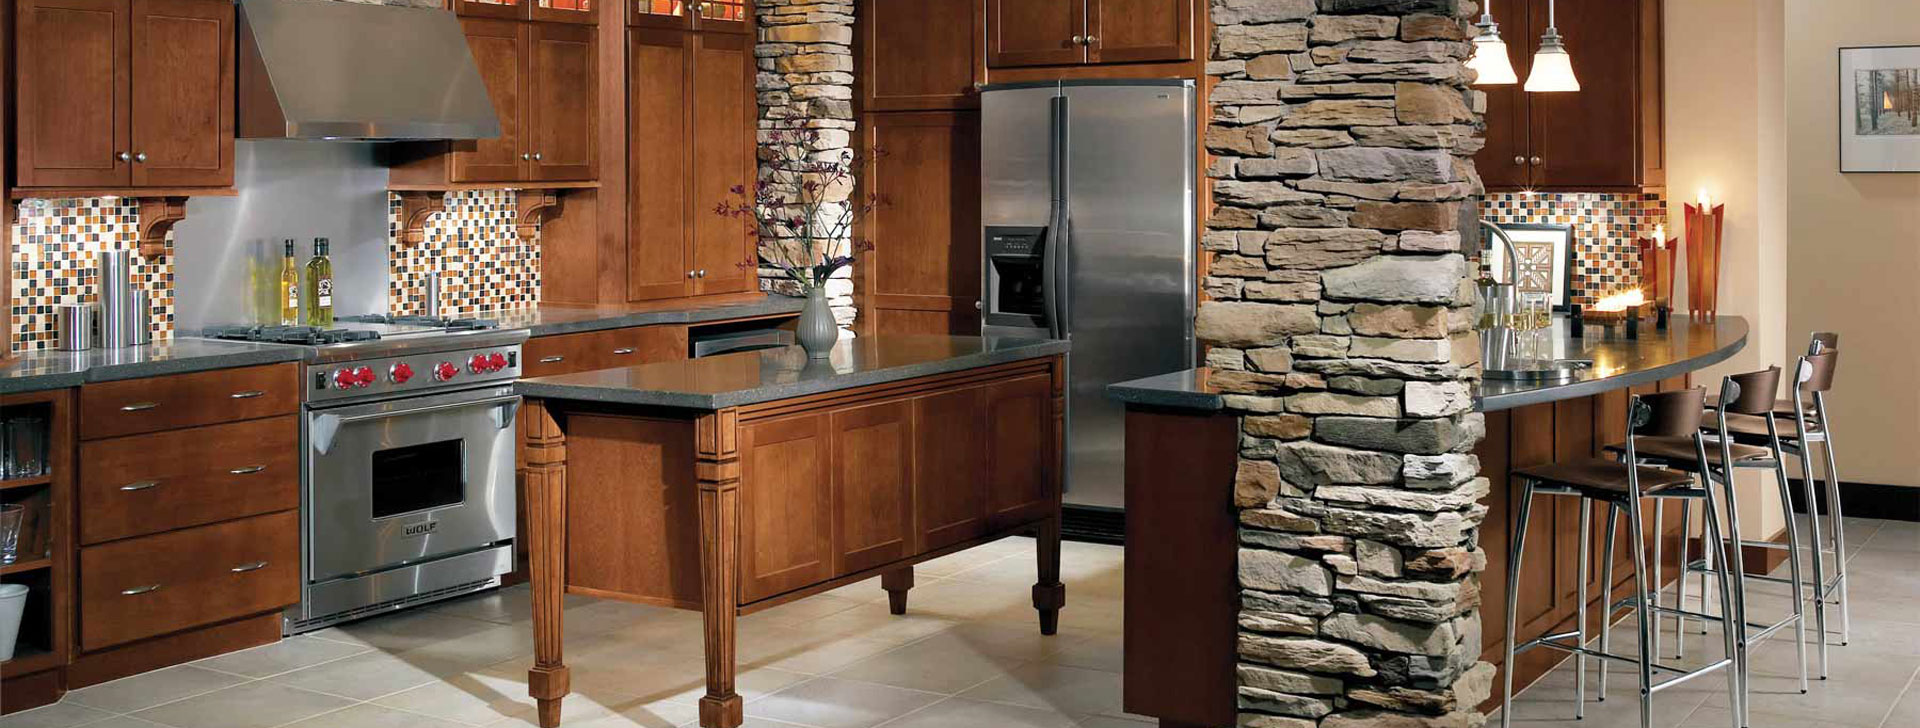 Kitchen And Bath Design Quad Cities Home Seiffert Home Design Building Supplies